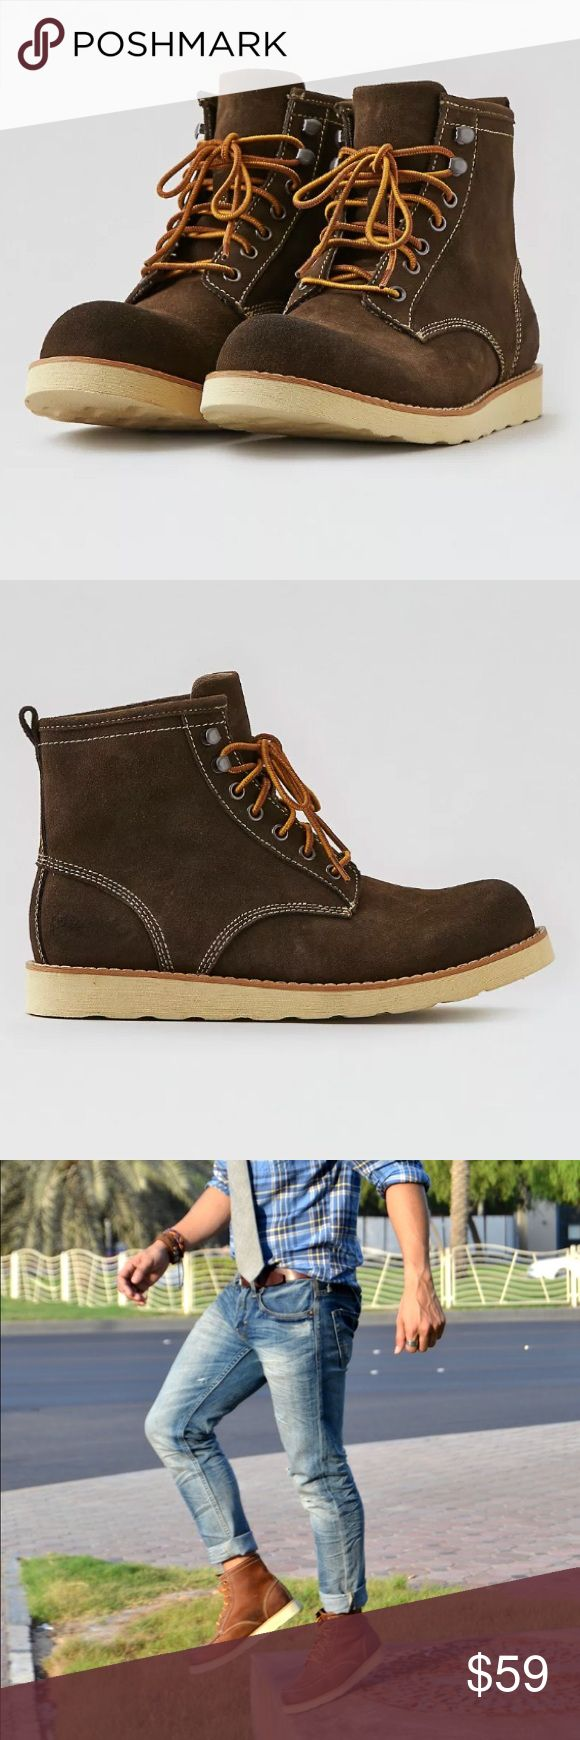 NEW AEO Men's Suede Lace Up Lumber Boots 10 Plain NEW in box American Eagle Outfitters $99 Plain Toe Lumber Boots In dark brown suede  Size 10      Any questions, Please ask.   Please check out our other listings, we can combine shipping.  🎉❤️Offers are welcomed!❤️🎉 American Eagle Outfitters Shoes Boots